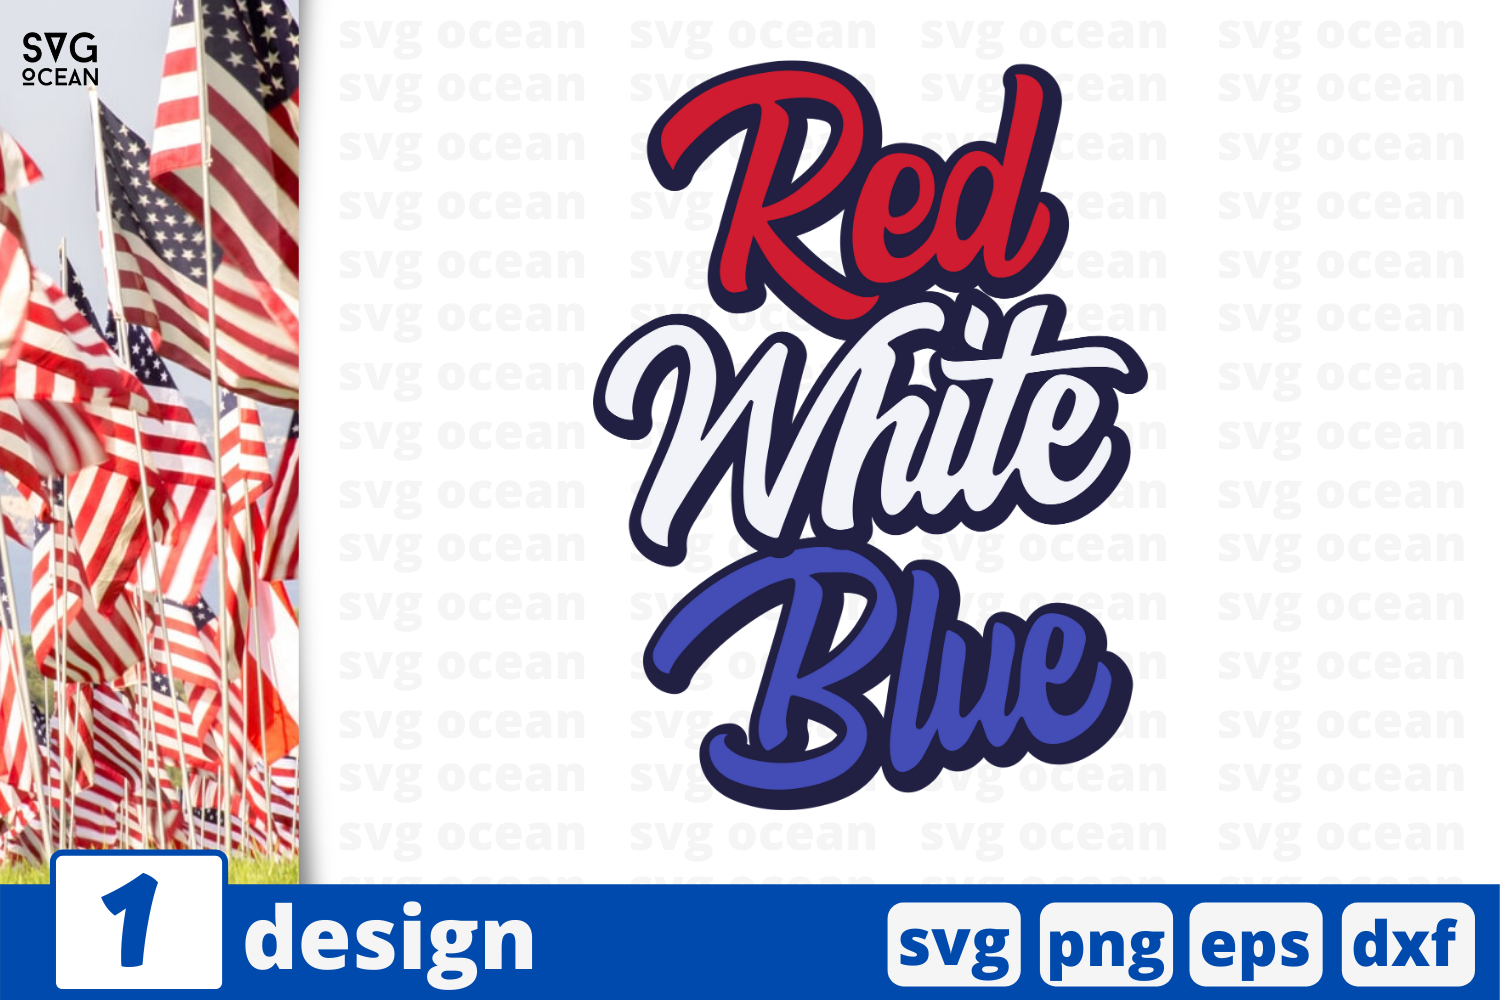 Download Free Red White Blue Graphic By Svgocean Creative Fabrica for Cricut Explore, Silhouette and other cutting machines.